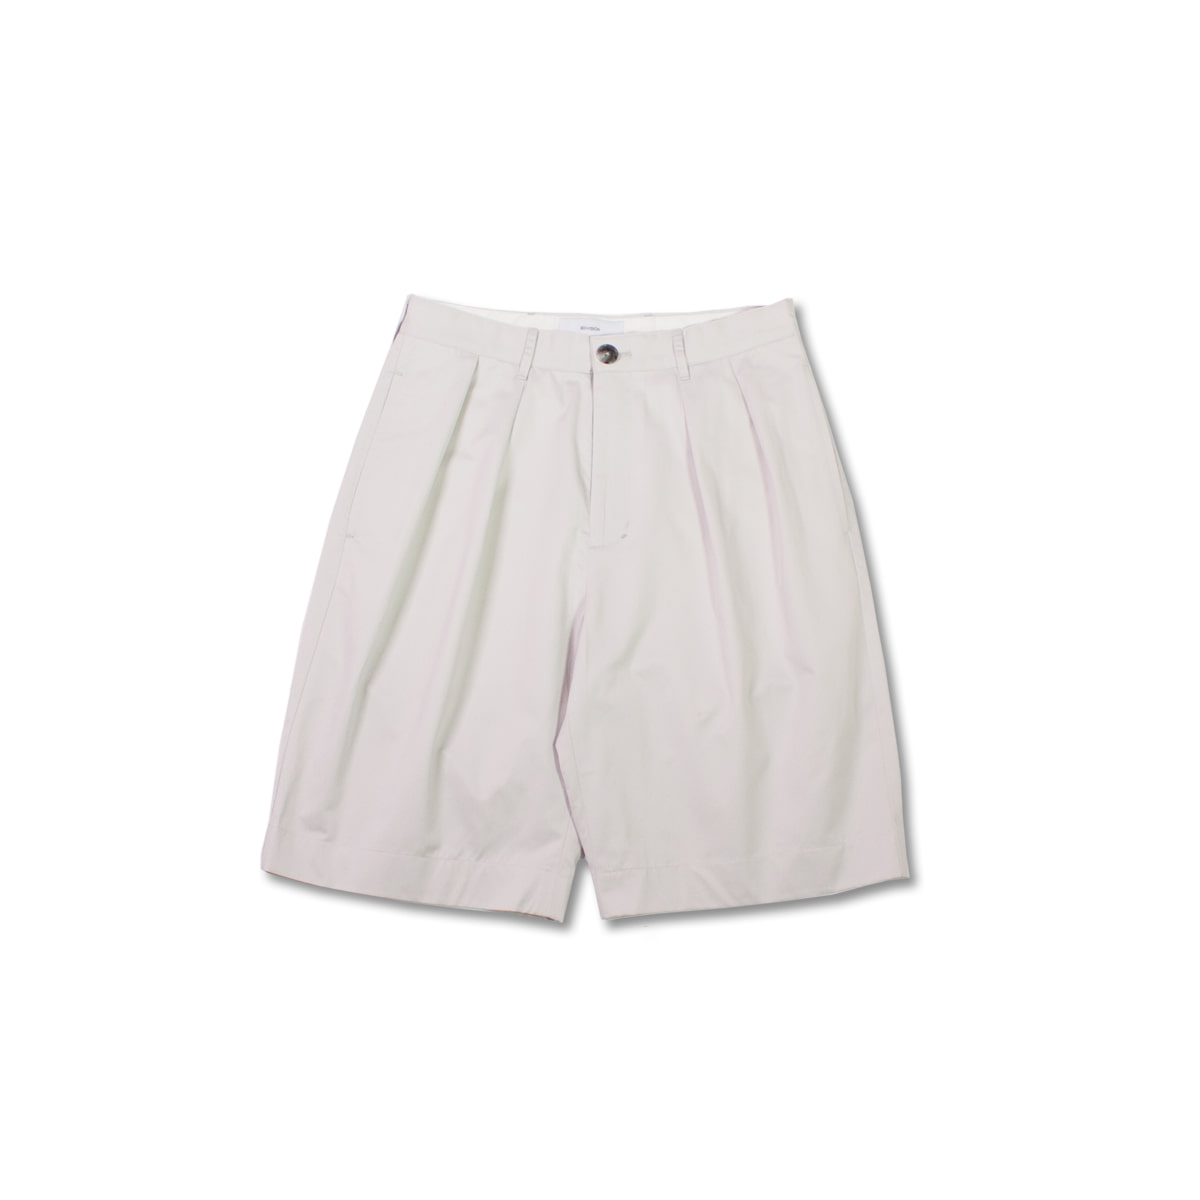 [8DIVISION] WIDE CHINO SHORTS 'LIGHT GREY'